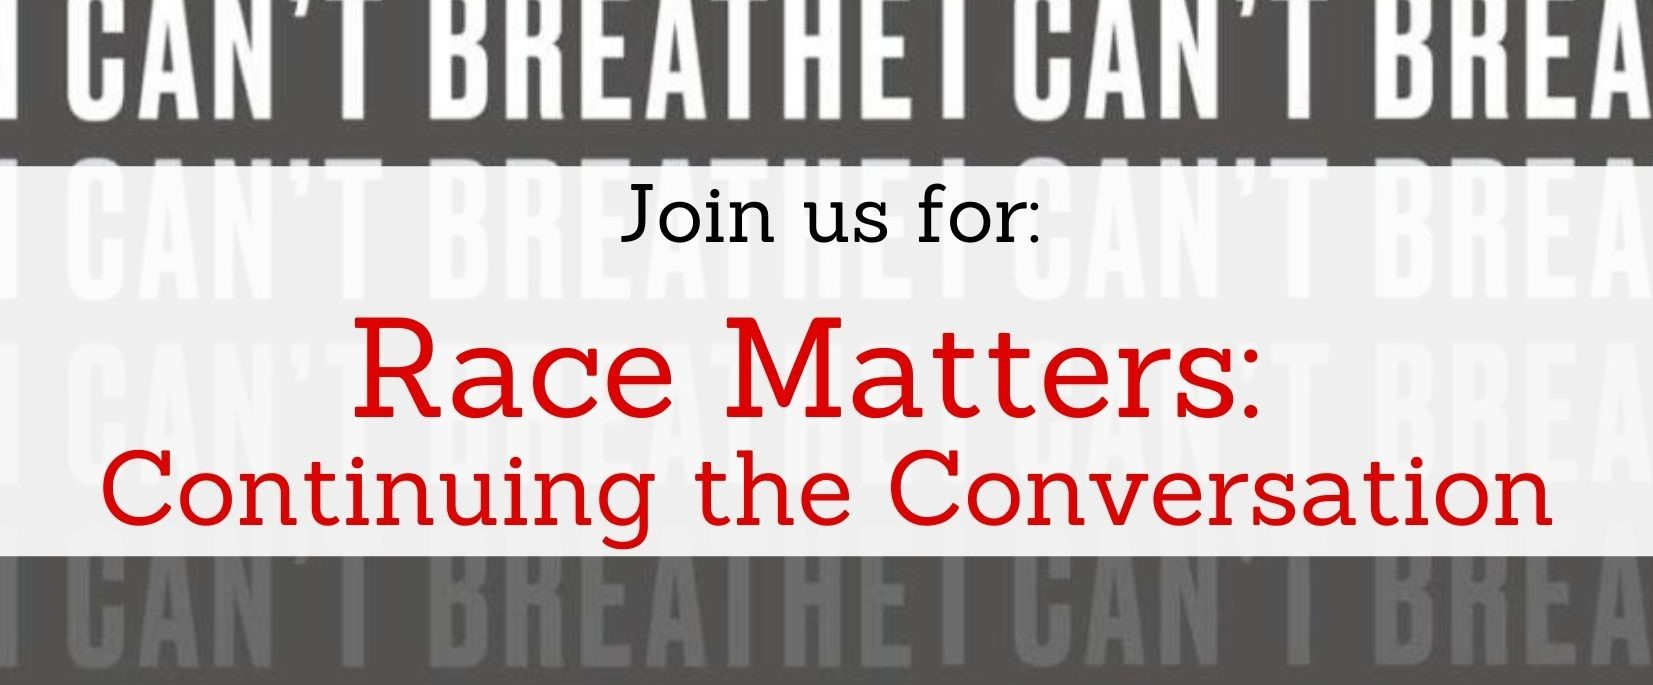 Race Matters: Continuing the Conversation